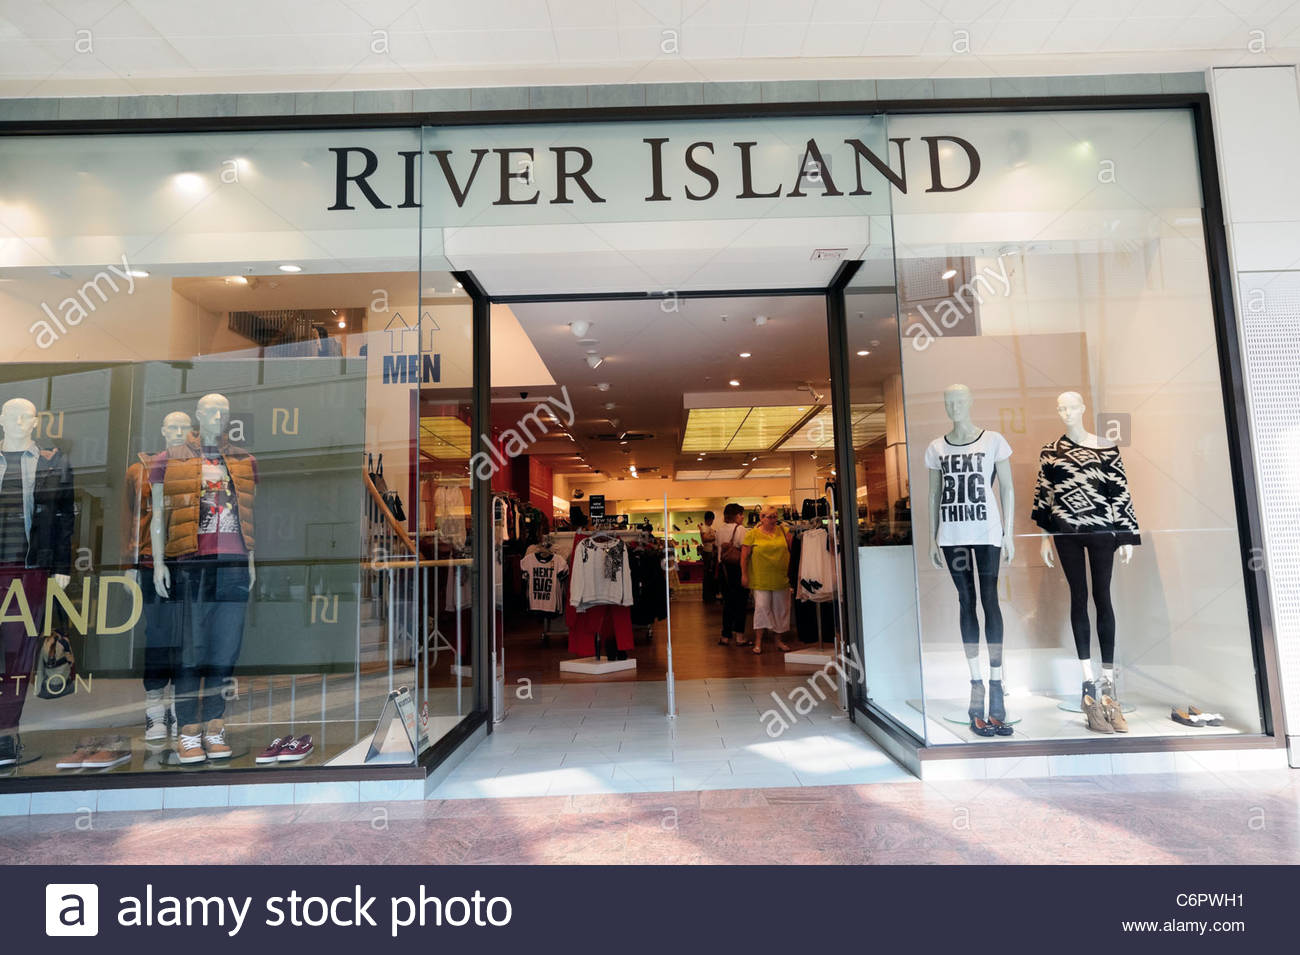 Lookup your closest River Island with the River Island store locator to find opening times, address and location details with membhobbdownload-zy.ga